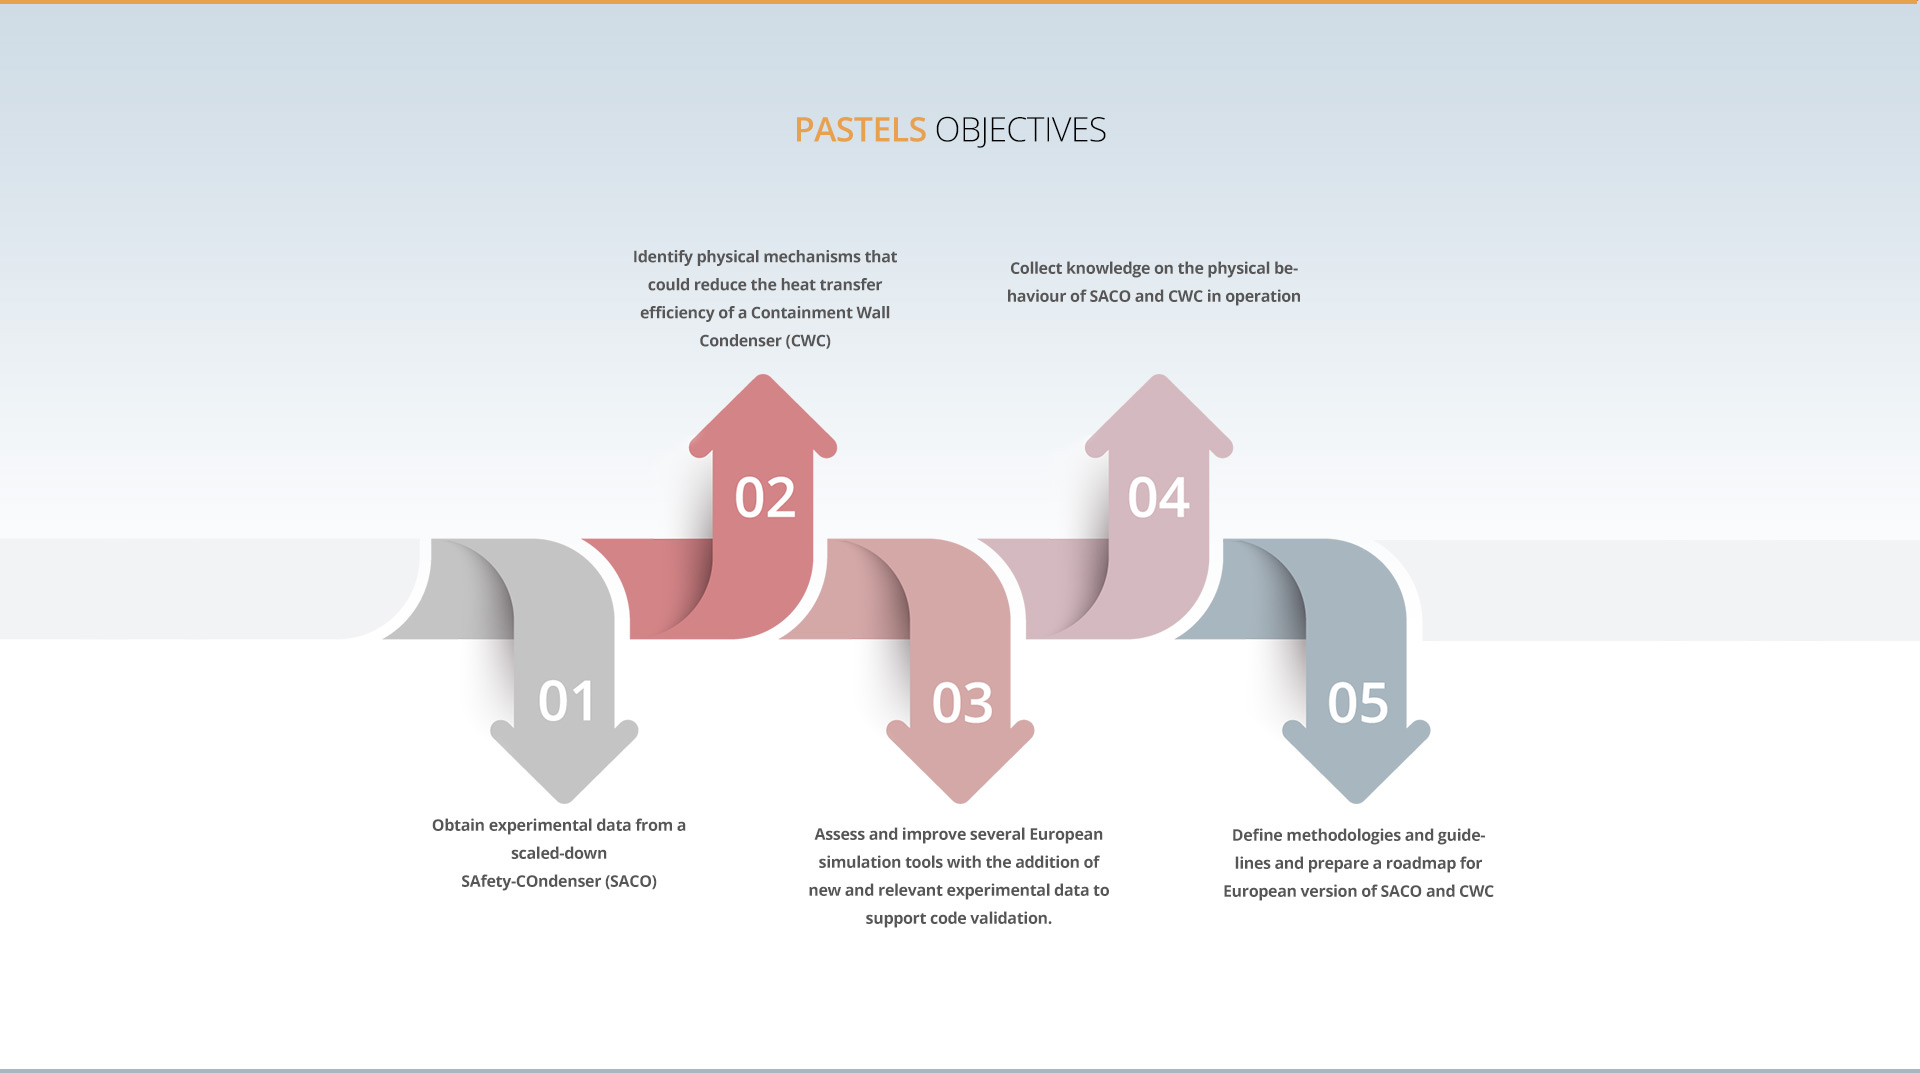 PASTELS Project Objectives